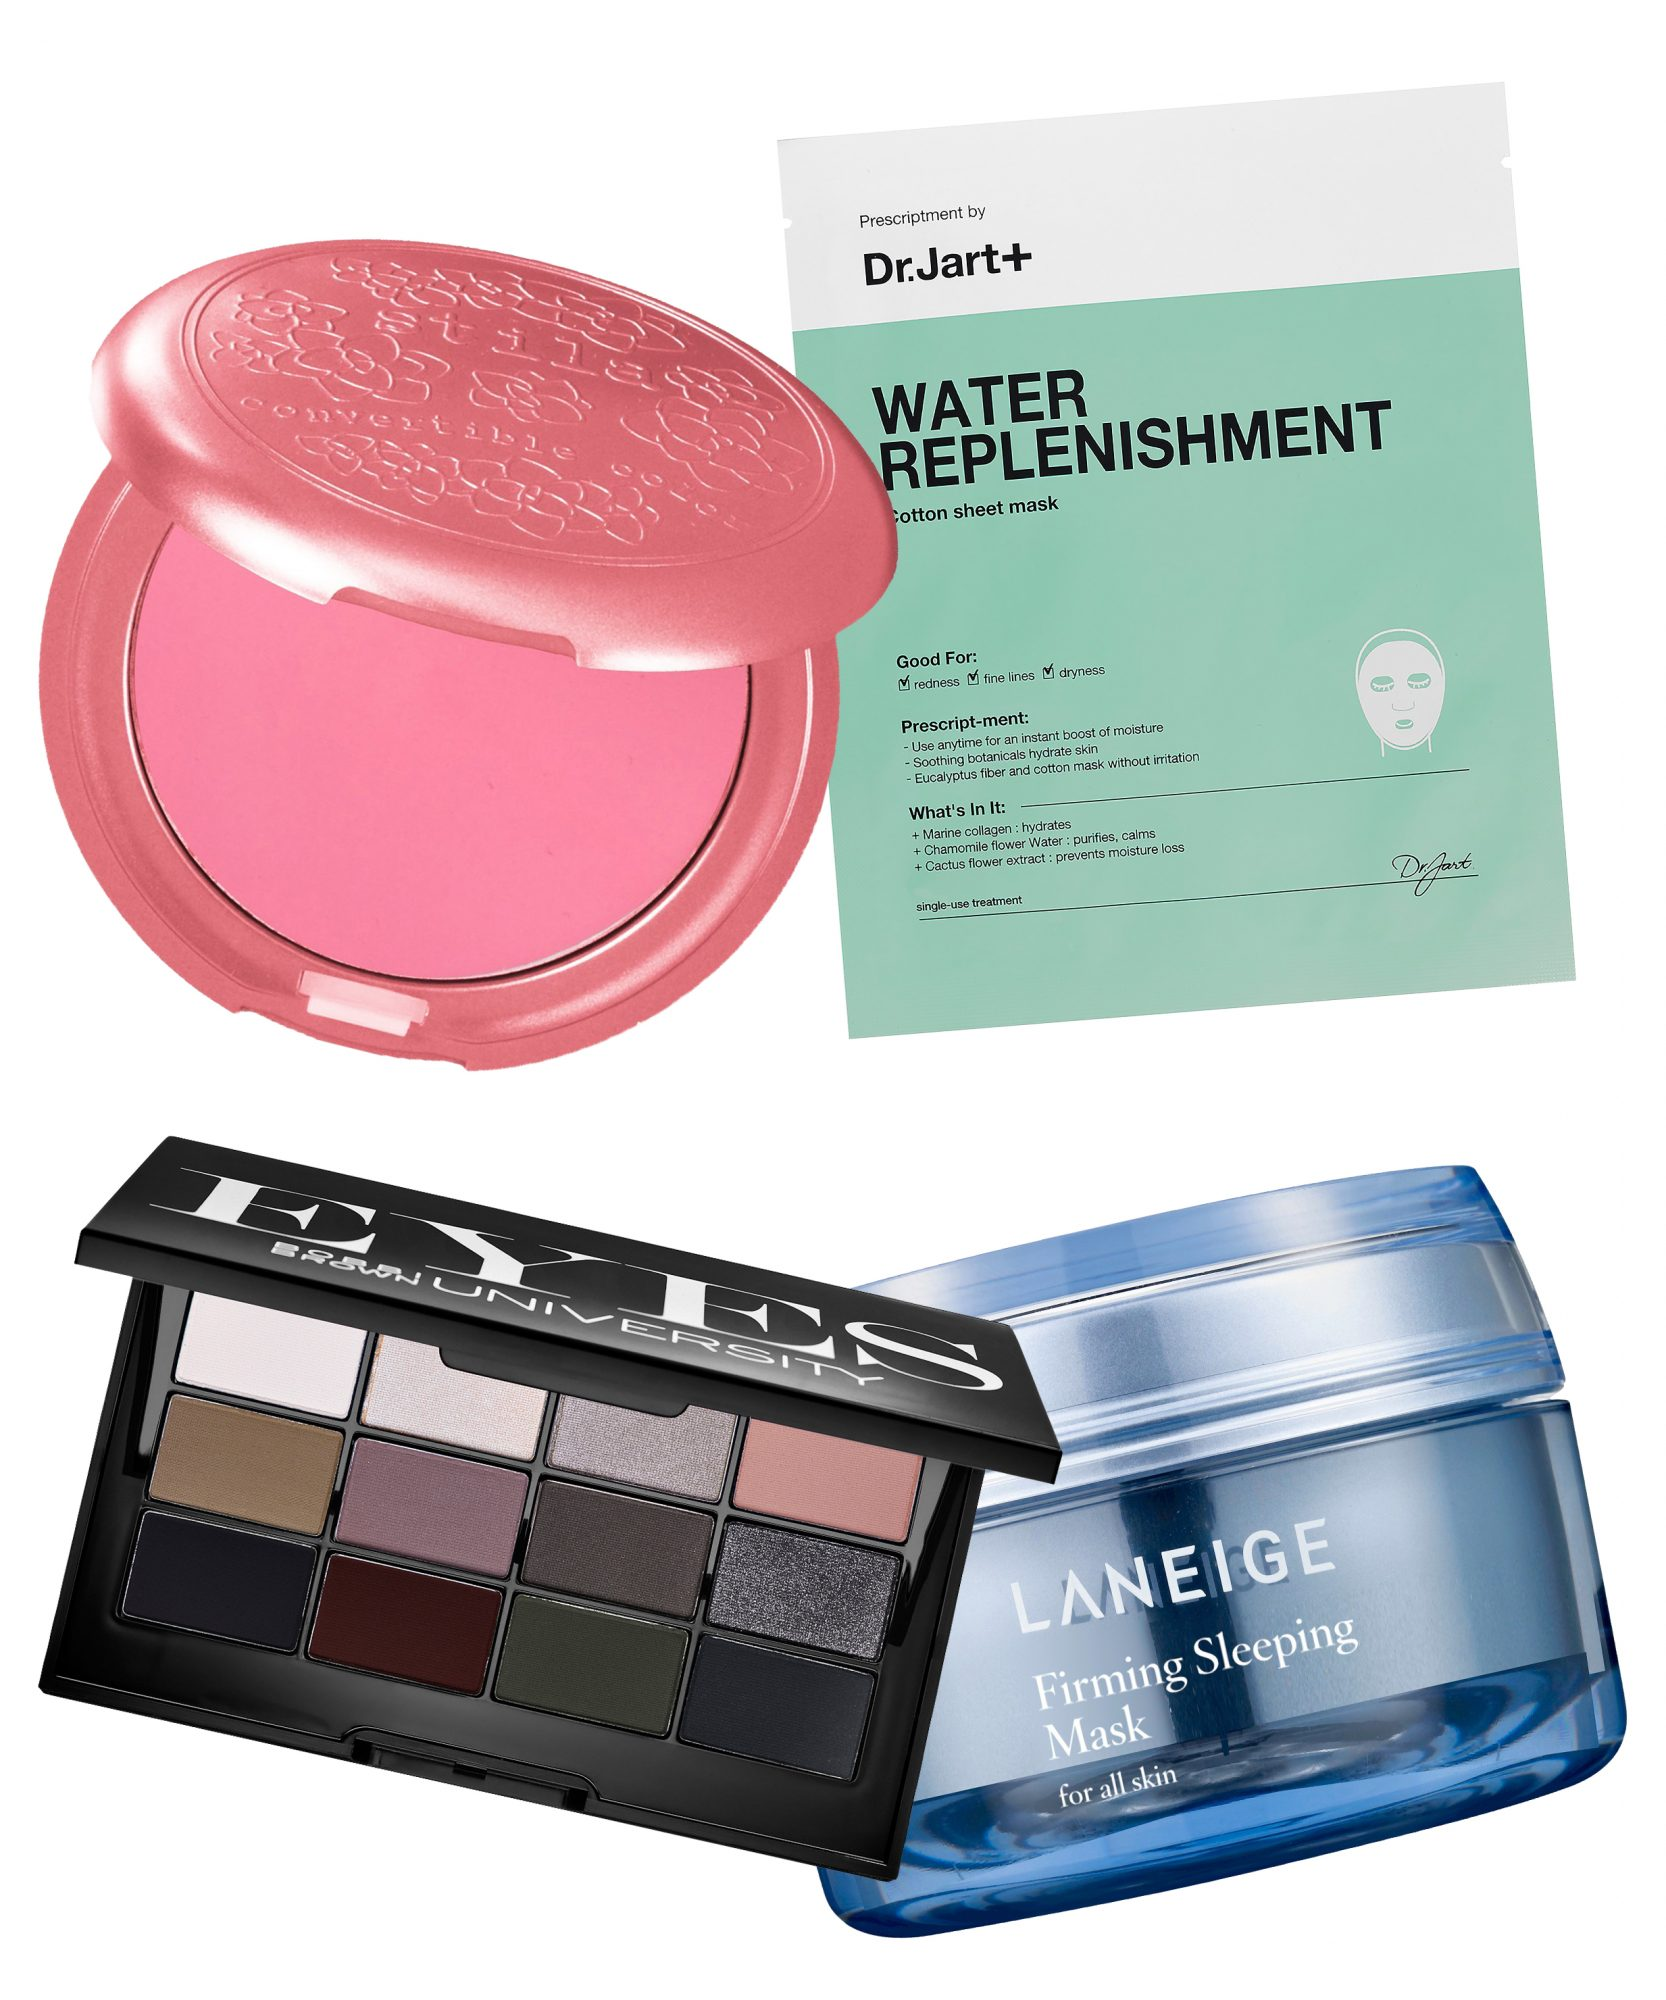 The Beauty Products That Are Perfect for You Based on Your Zodiac Sign